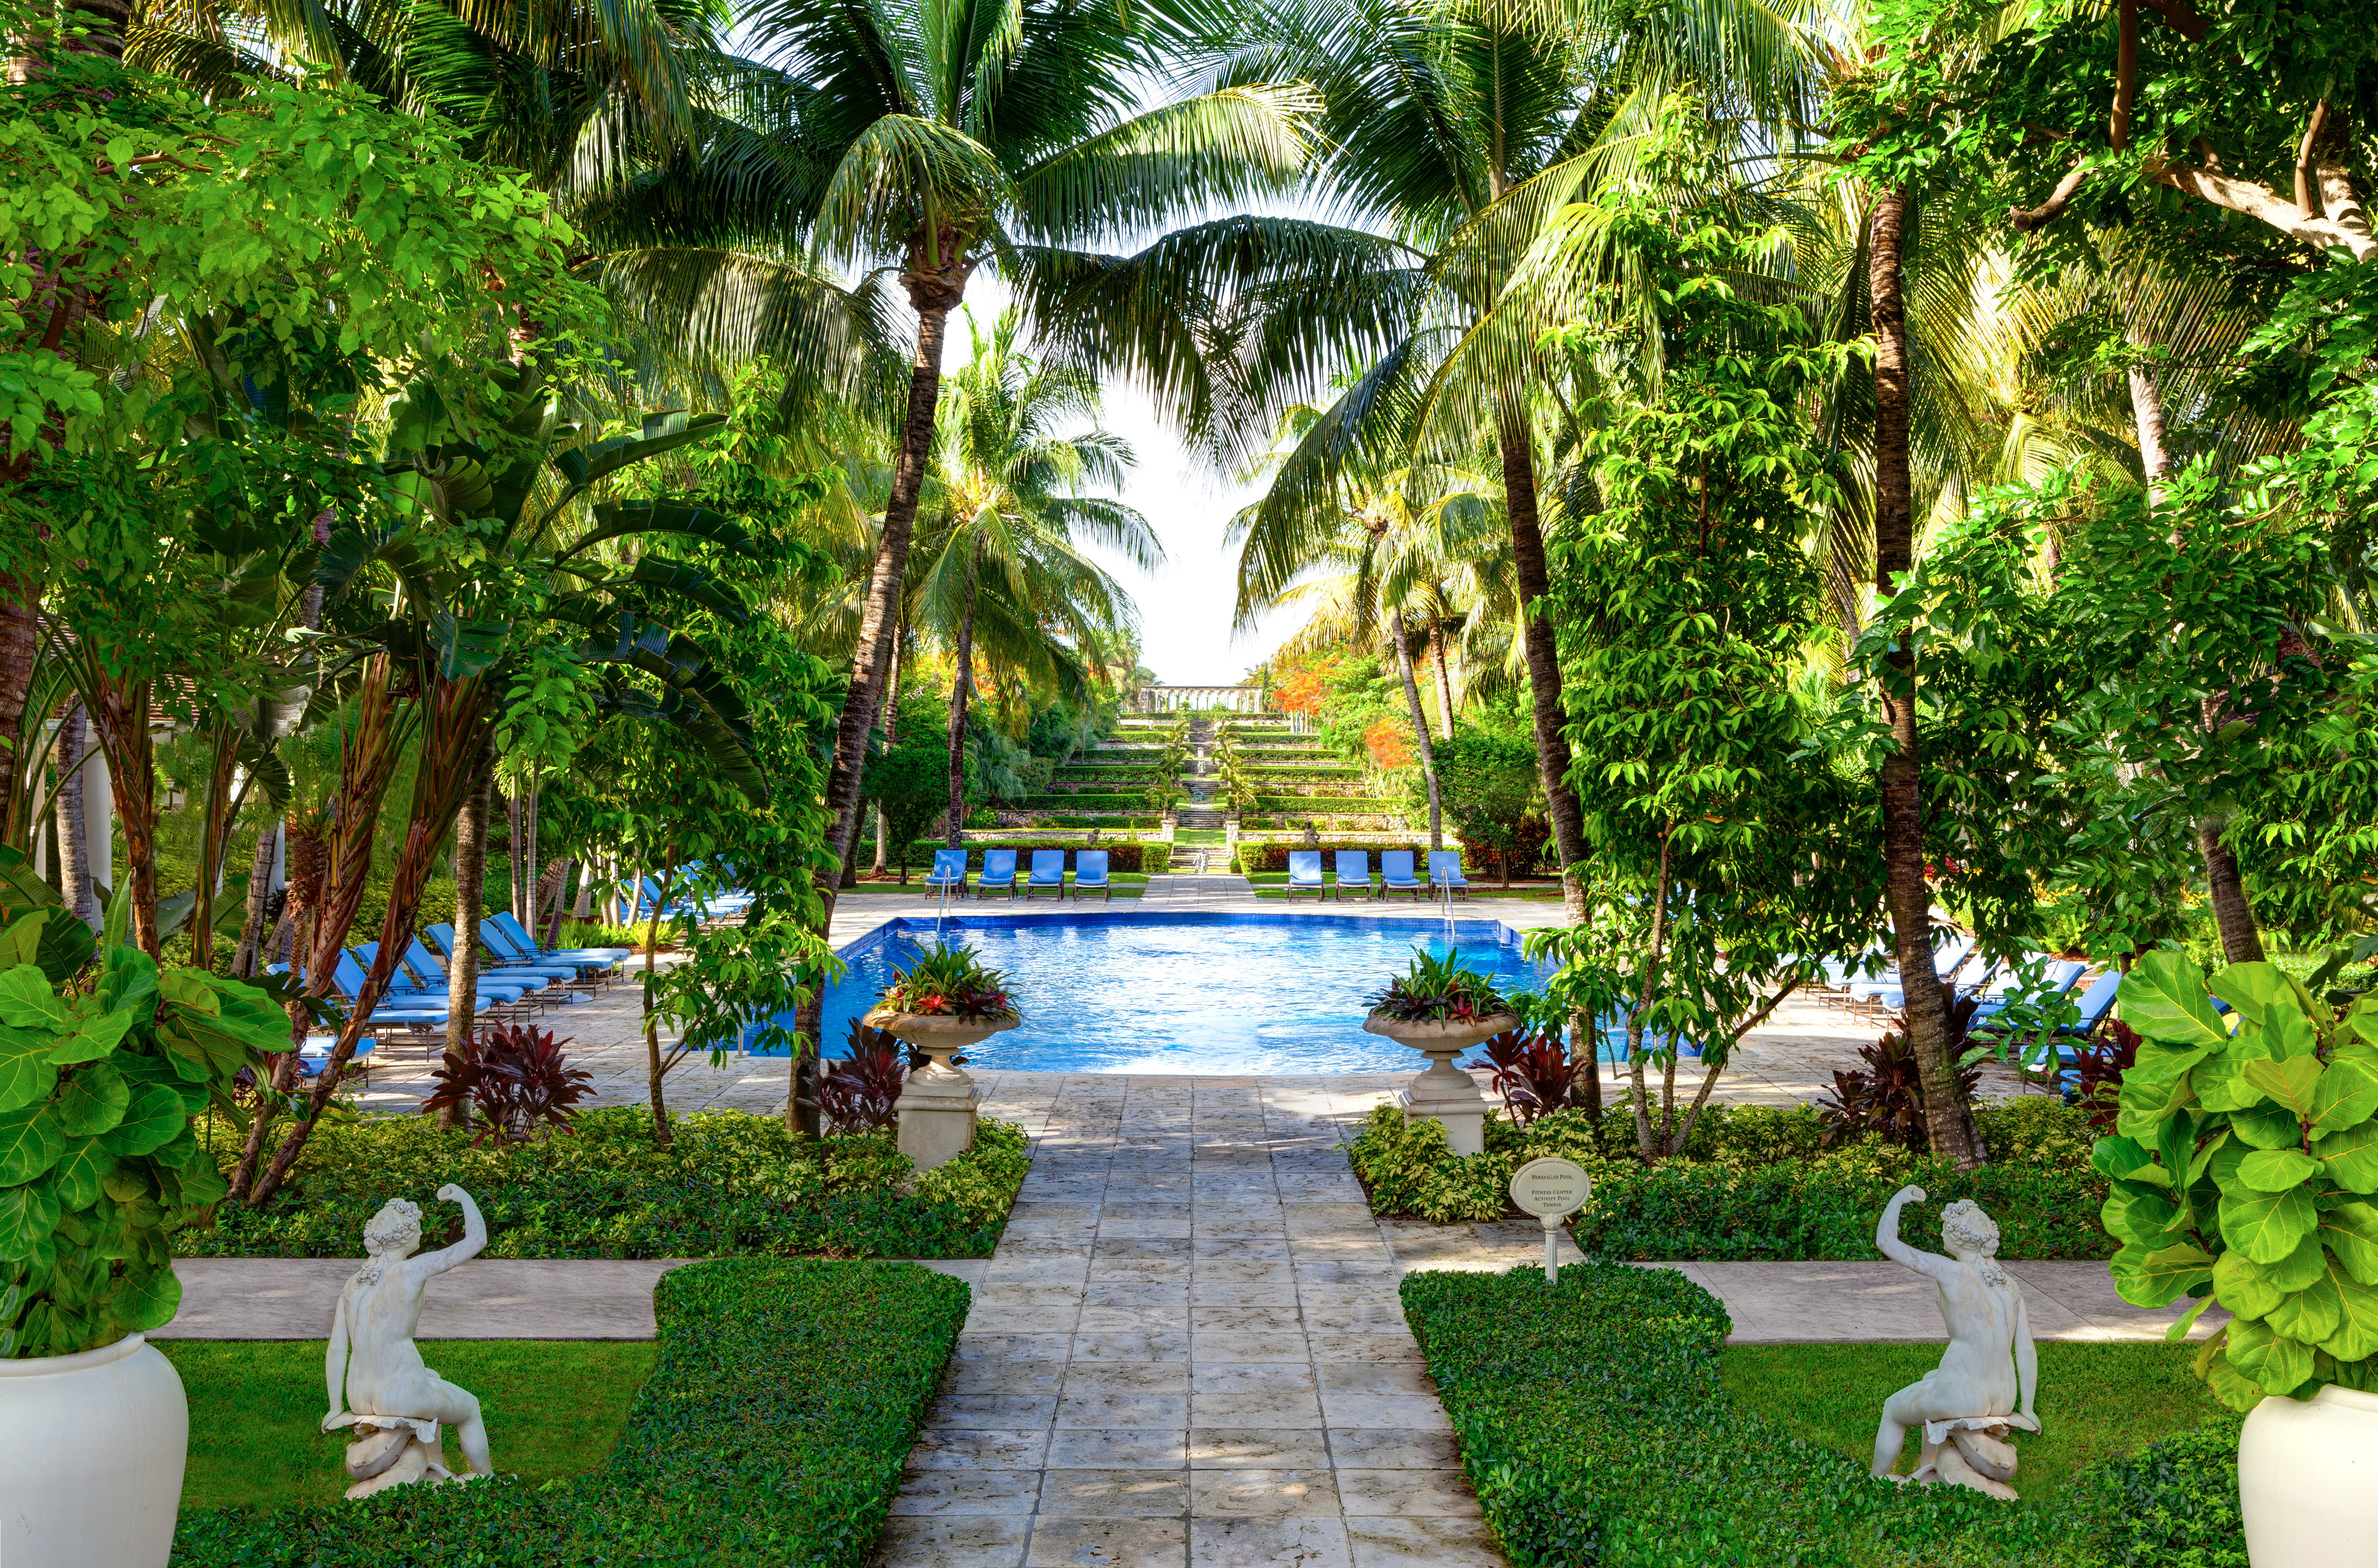 Adult-only Family Grounds Hotels Play Pool Romance Trip Ideas tree Resort botany Garden arecales backyard plant swimming pool Jungle botanical garden tropics flower palm surrounded